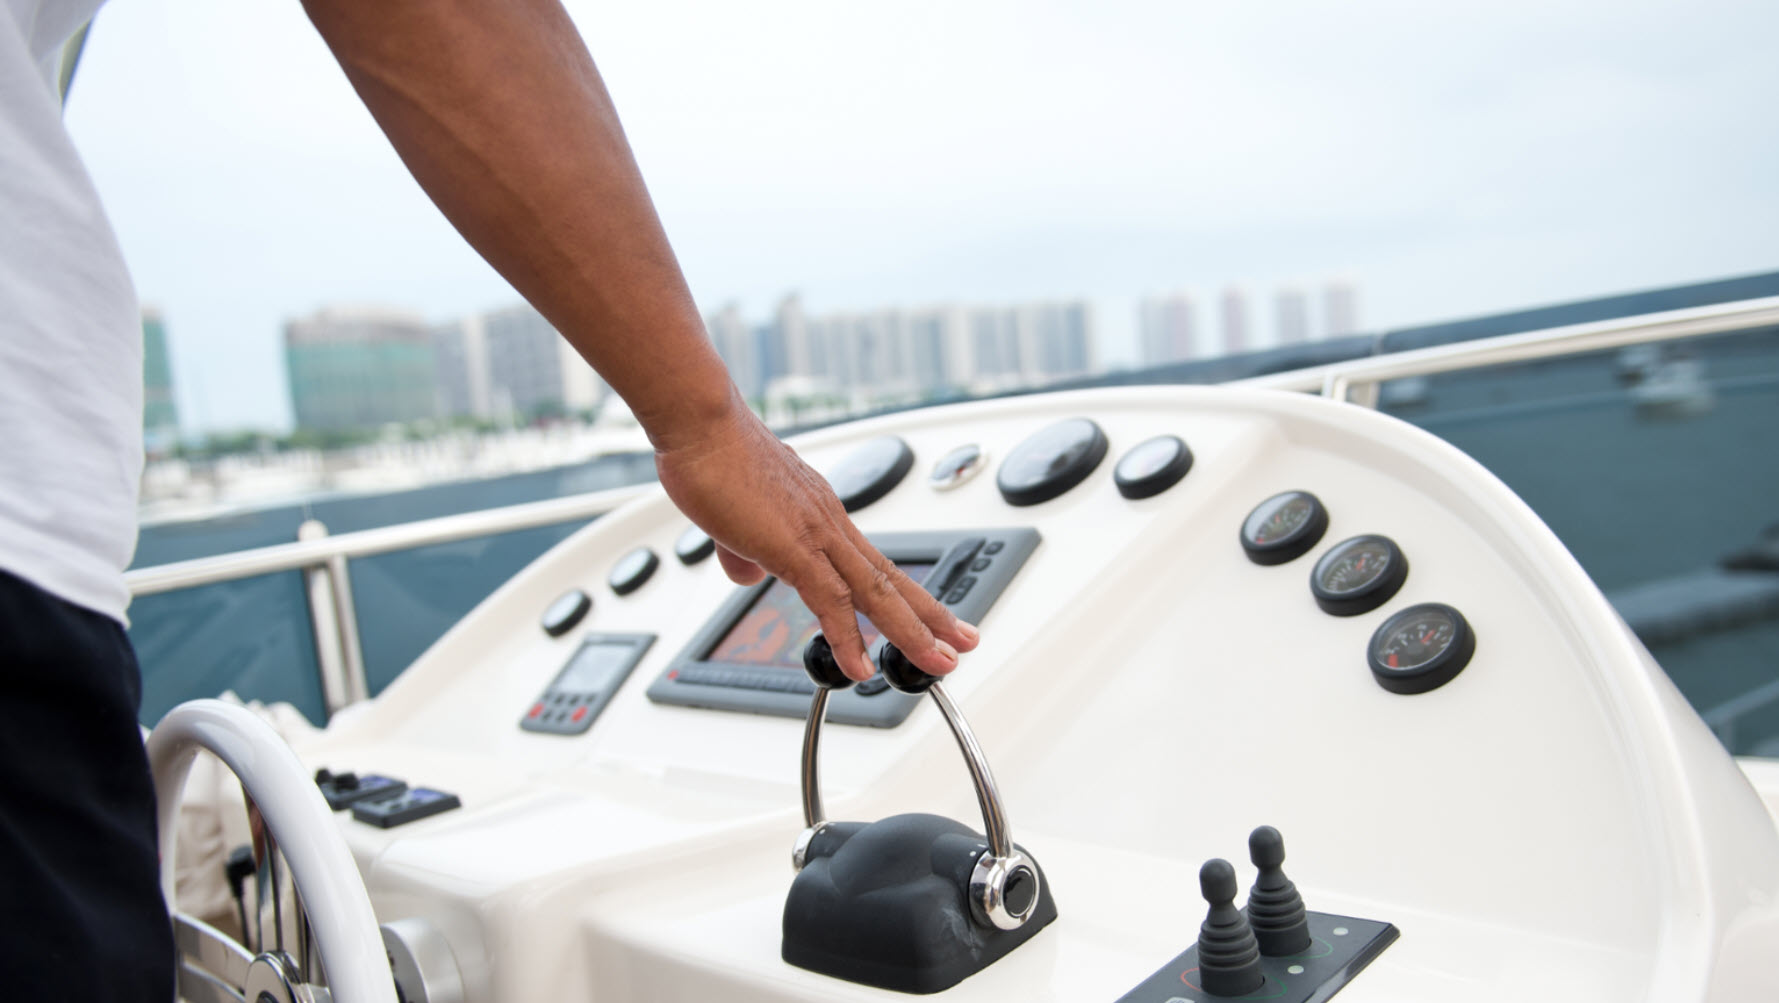 yacht technology and controls